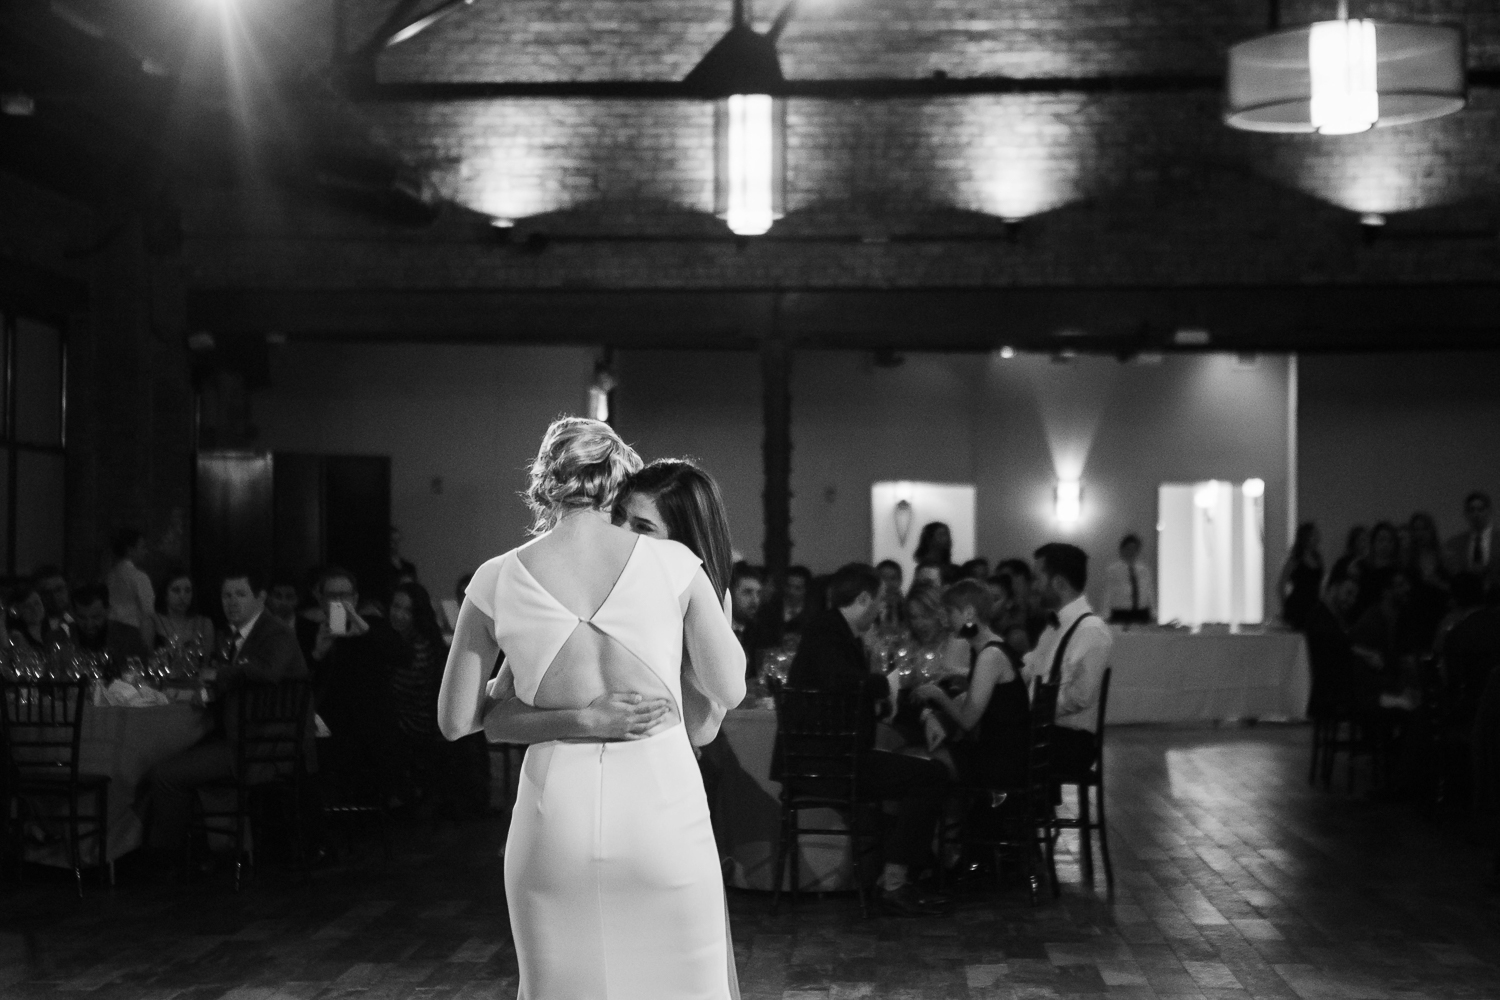 Black and white photo of the brides' first dance at their wedding | 26 Bridge Wedding Photos | Lesbian Brooklyn Wedding | Kristin and Marisa's Wedding